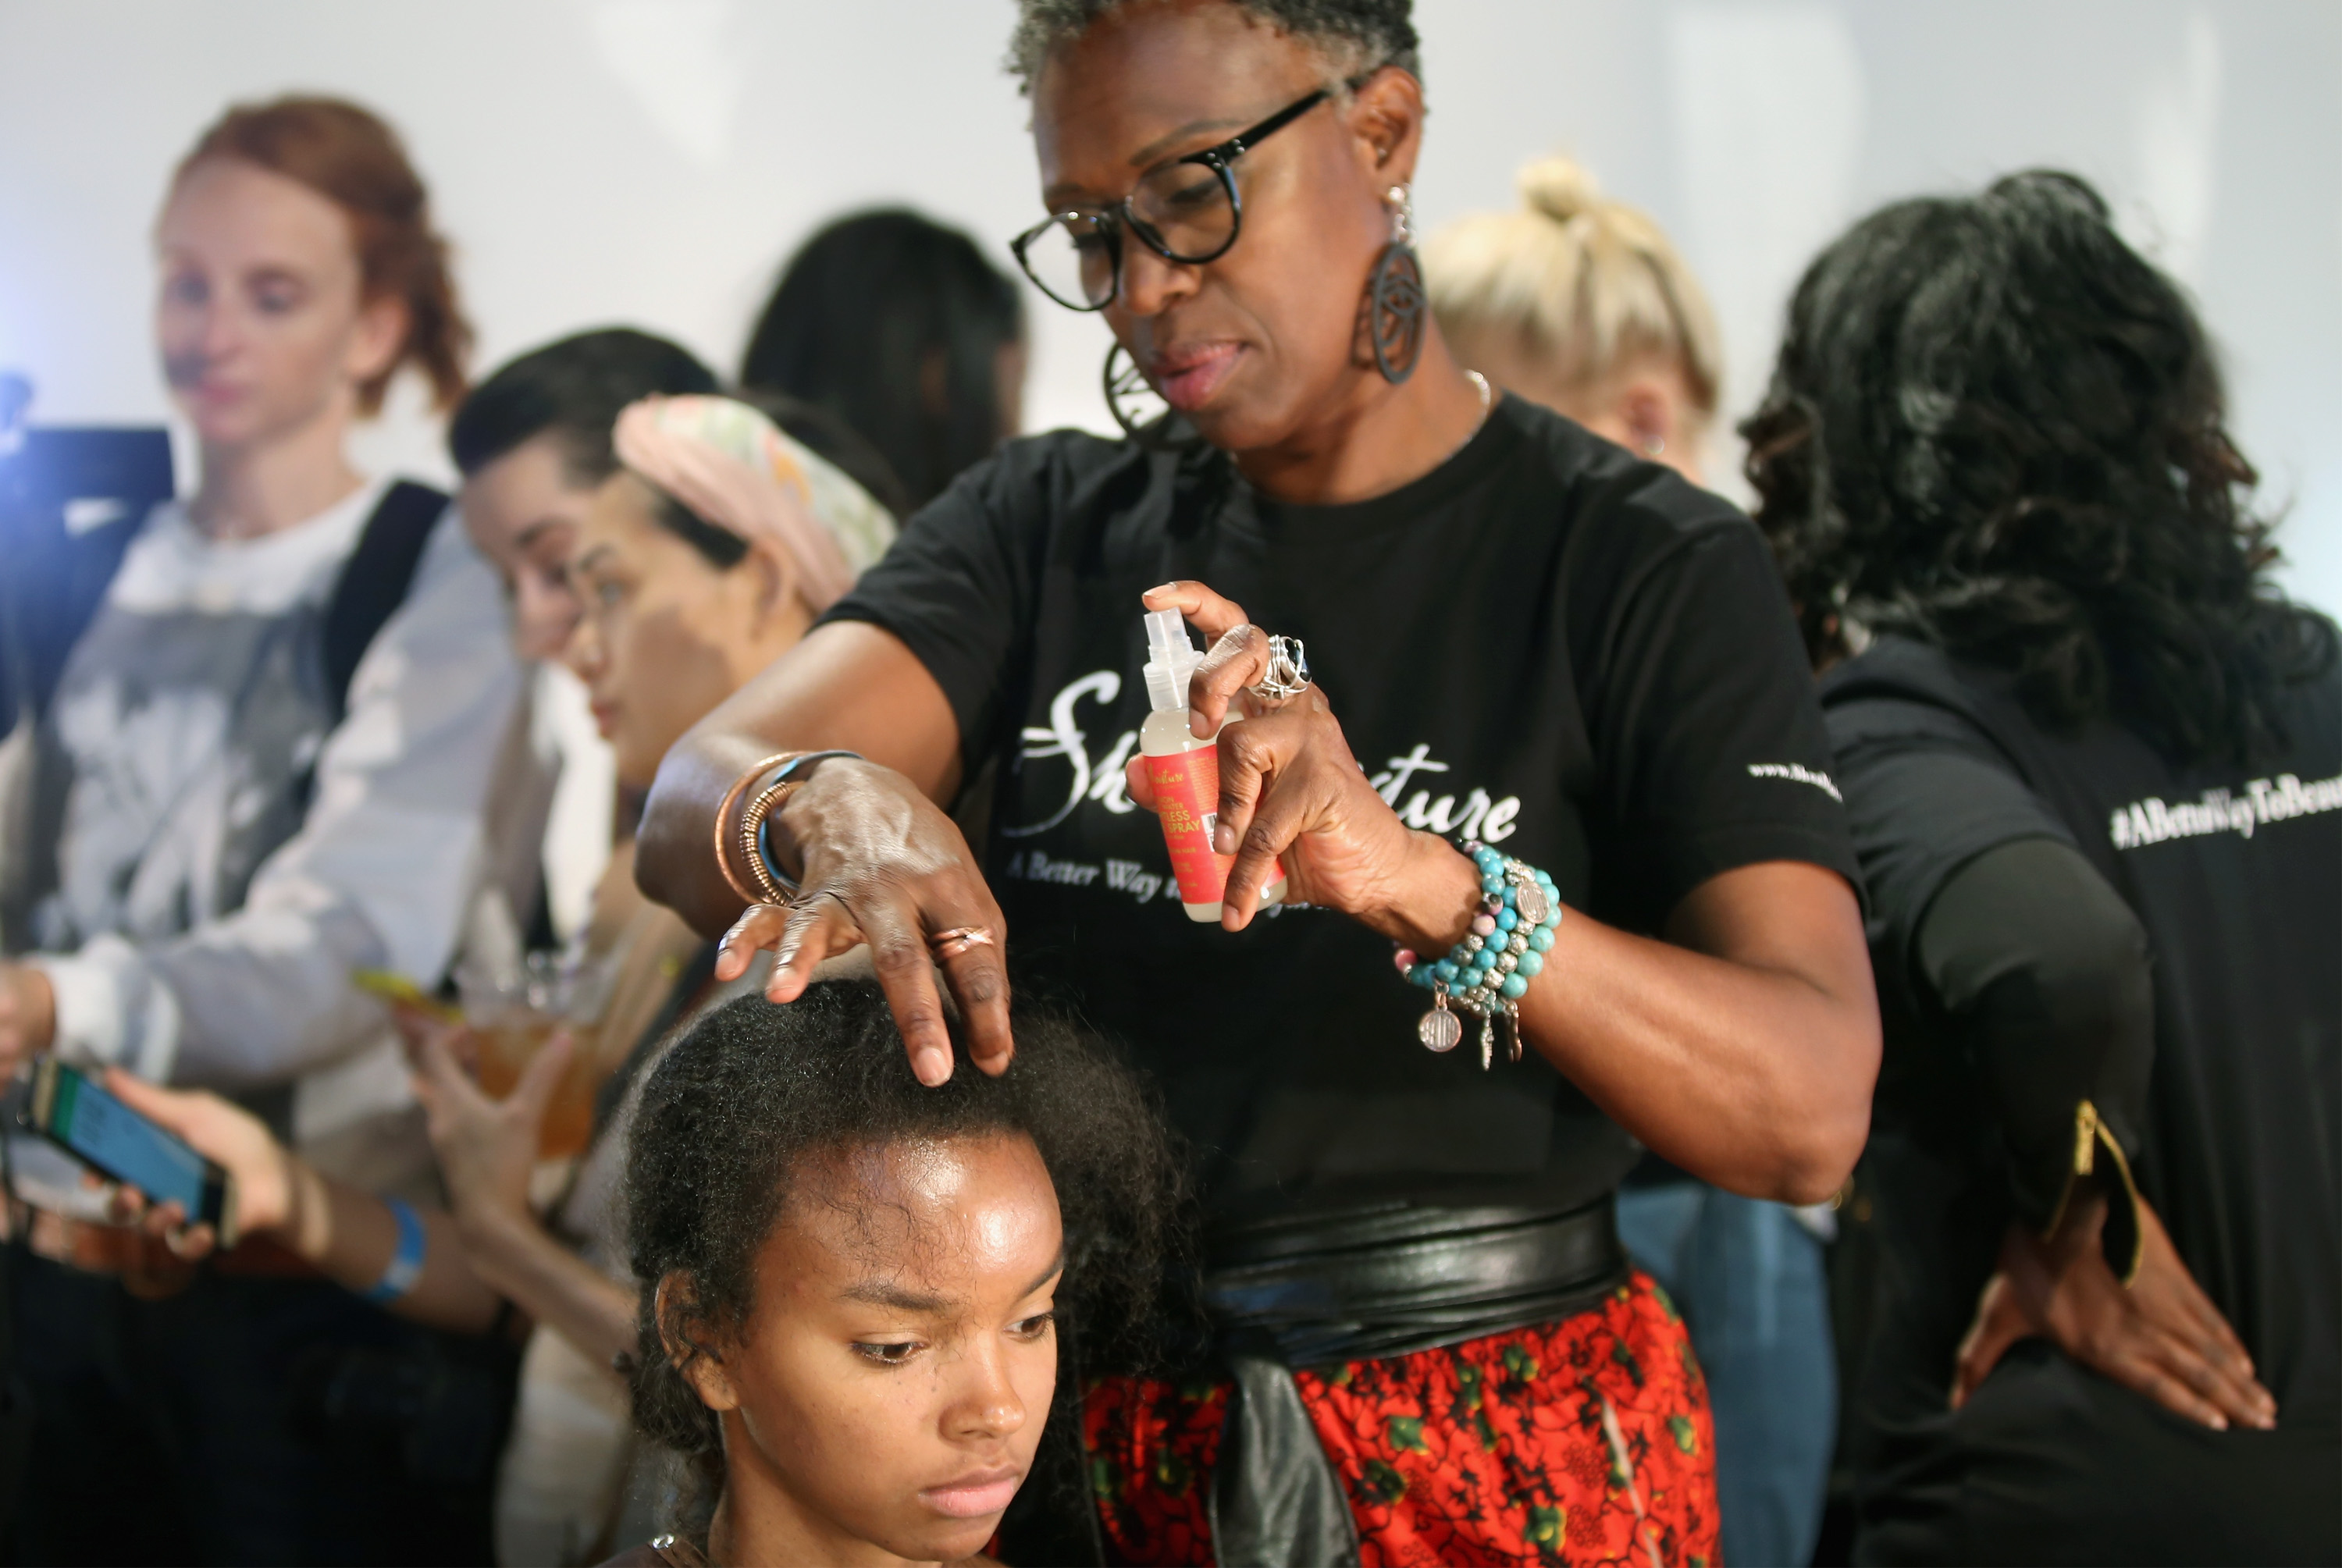 Backstage at the 2016 spring/summer Tracy Reese show. Photo: Bennett Raglin/ Getty Images